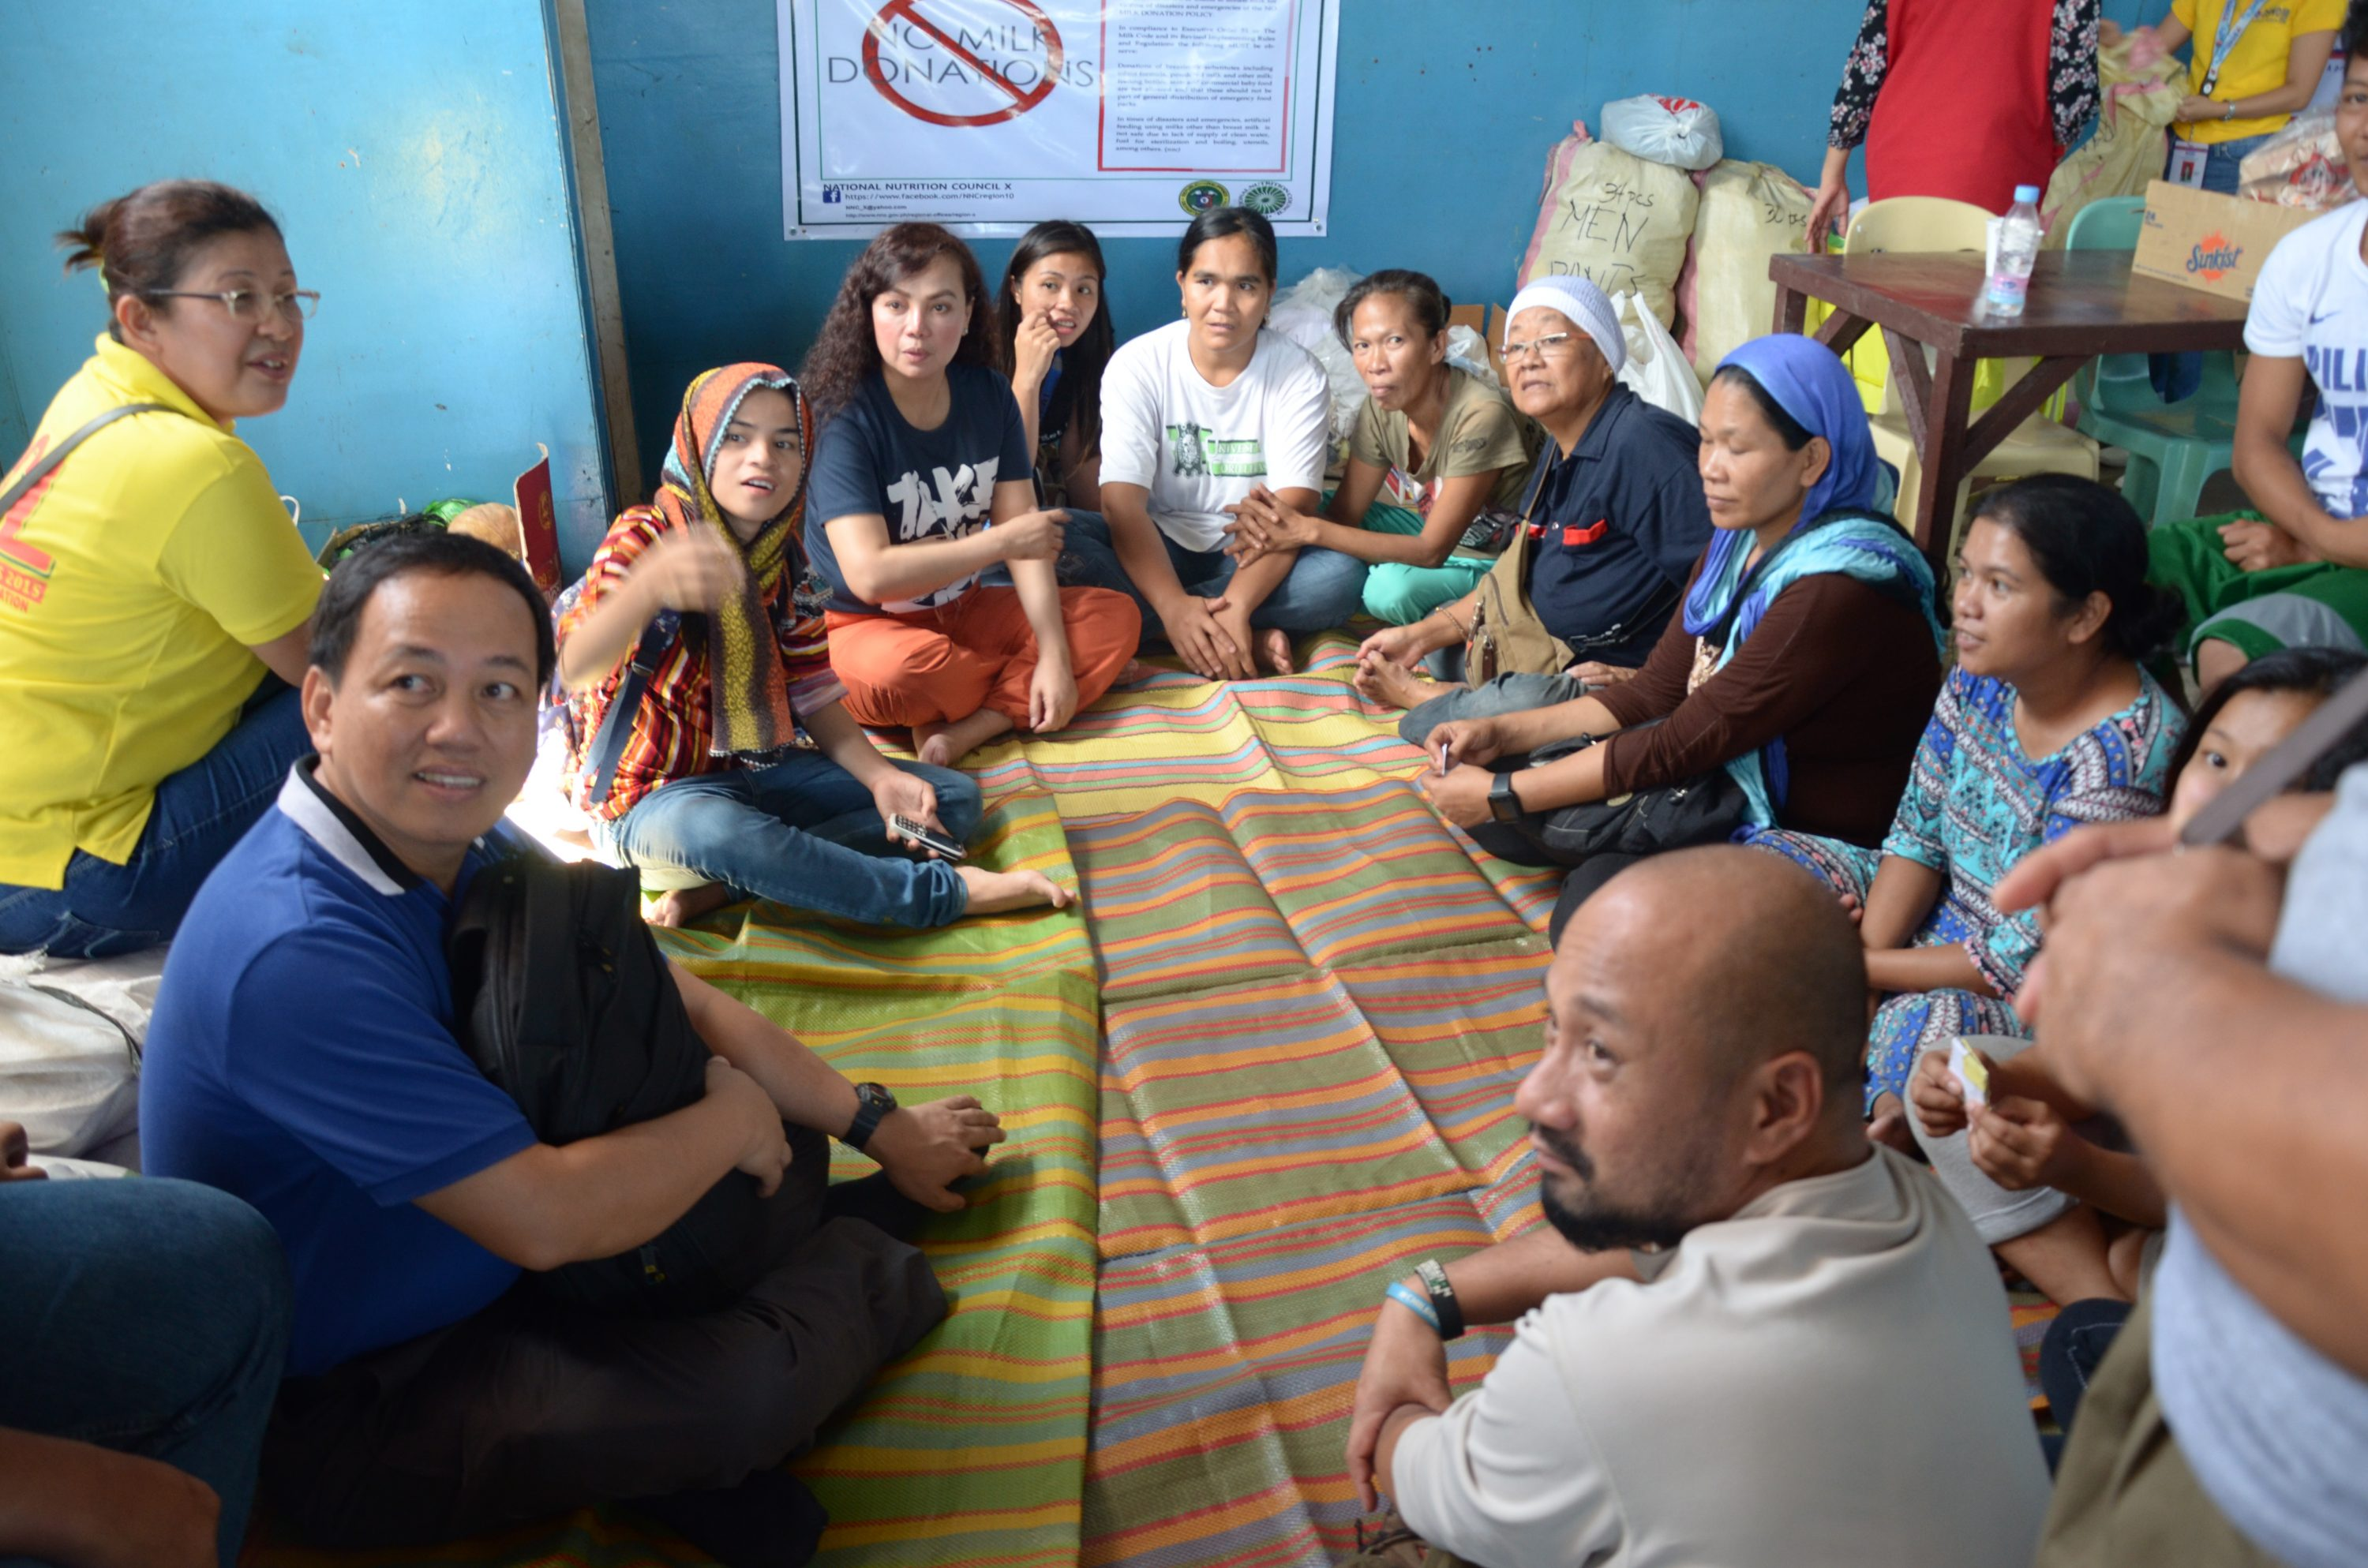 The Leaders At Ma. Cristina Evacuation Center In Iligan Talking With The Team.